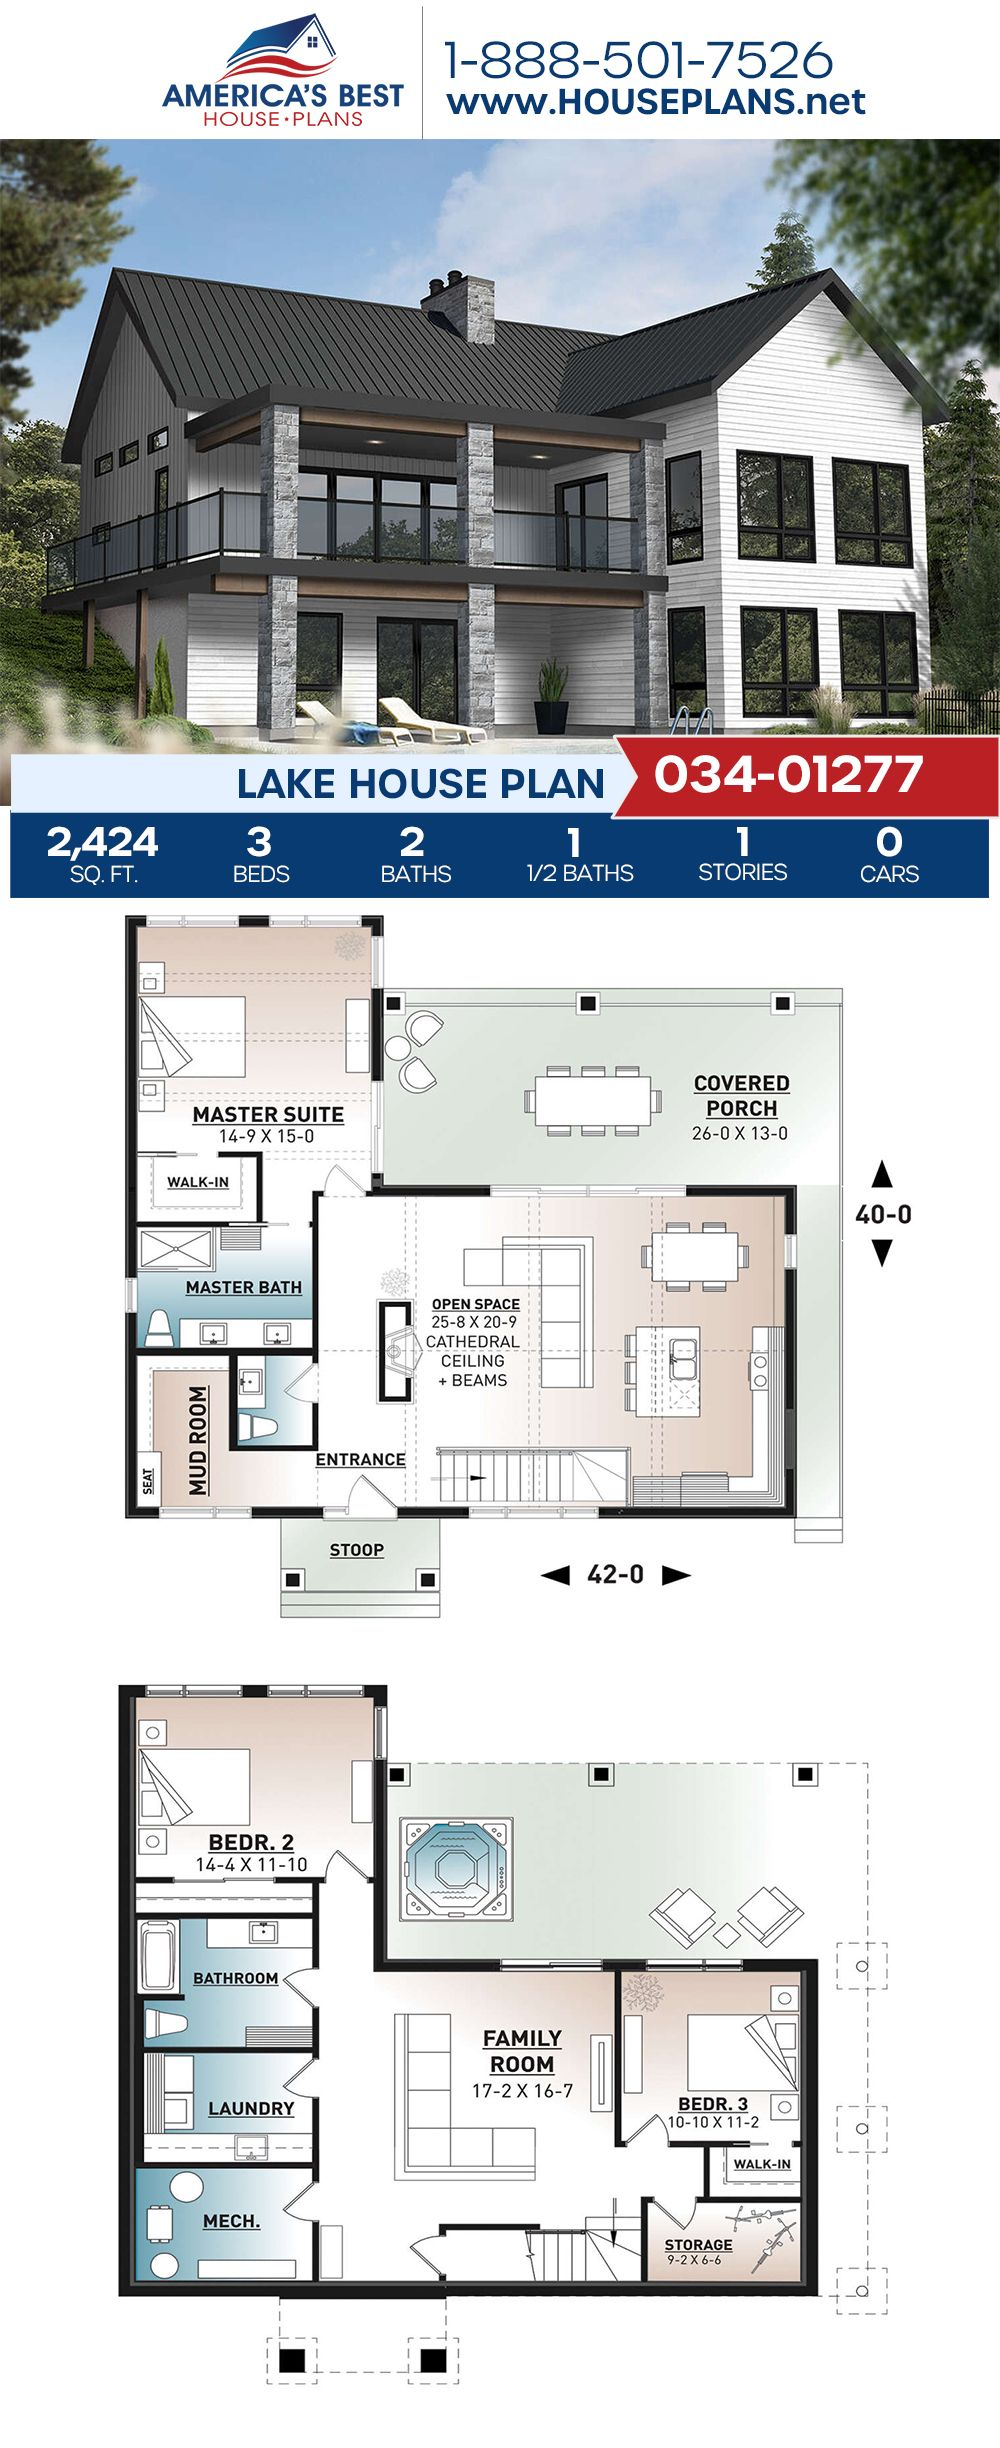 Pin on Lake house plans for cathy